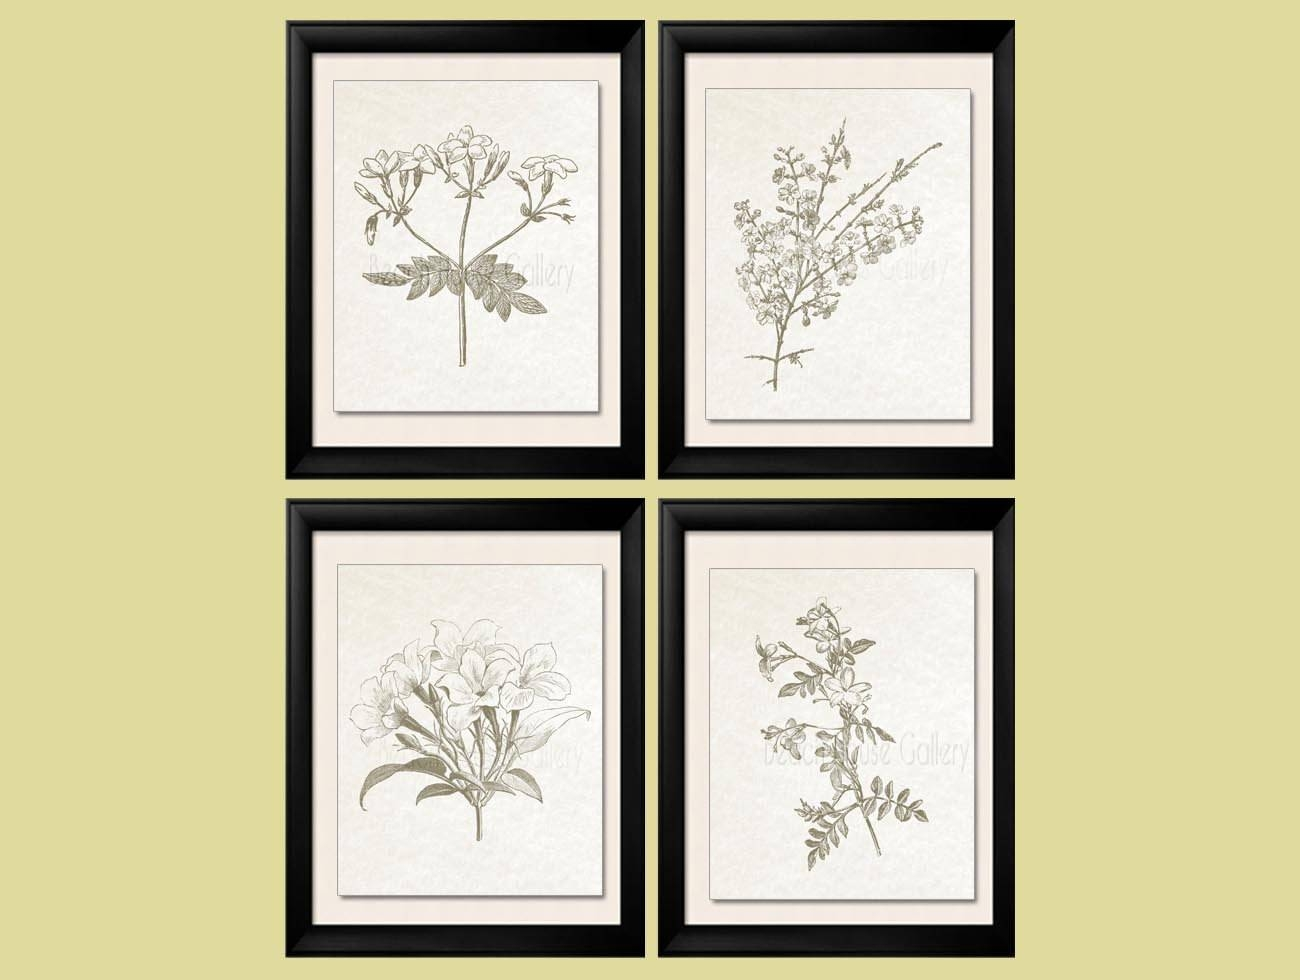 Botanical Prints Sepia Brown Botanical Botanical Plates With Regard To Most Up To Date Botanical Prints Etsy (View 11 of 20)